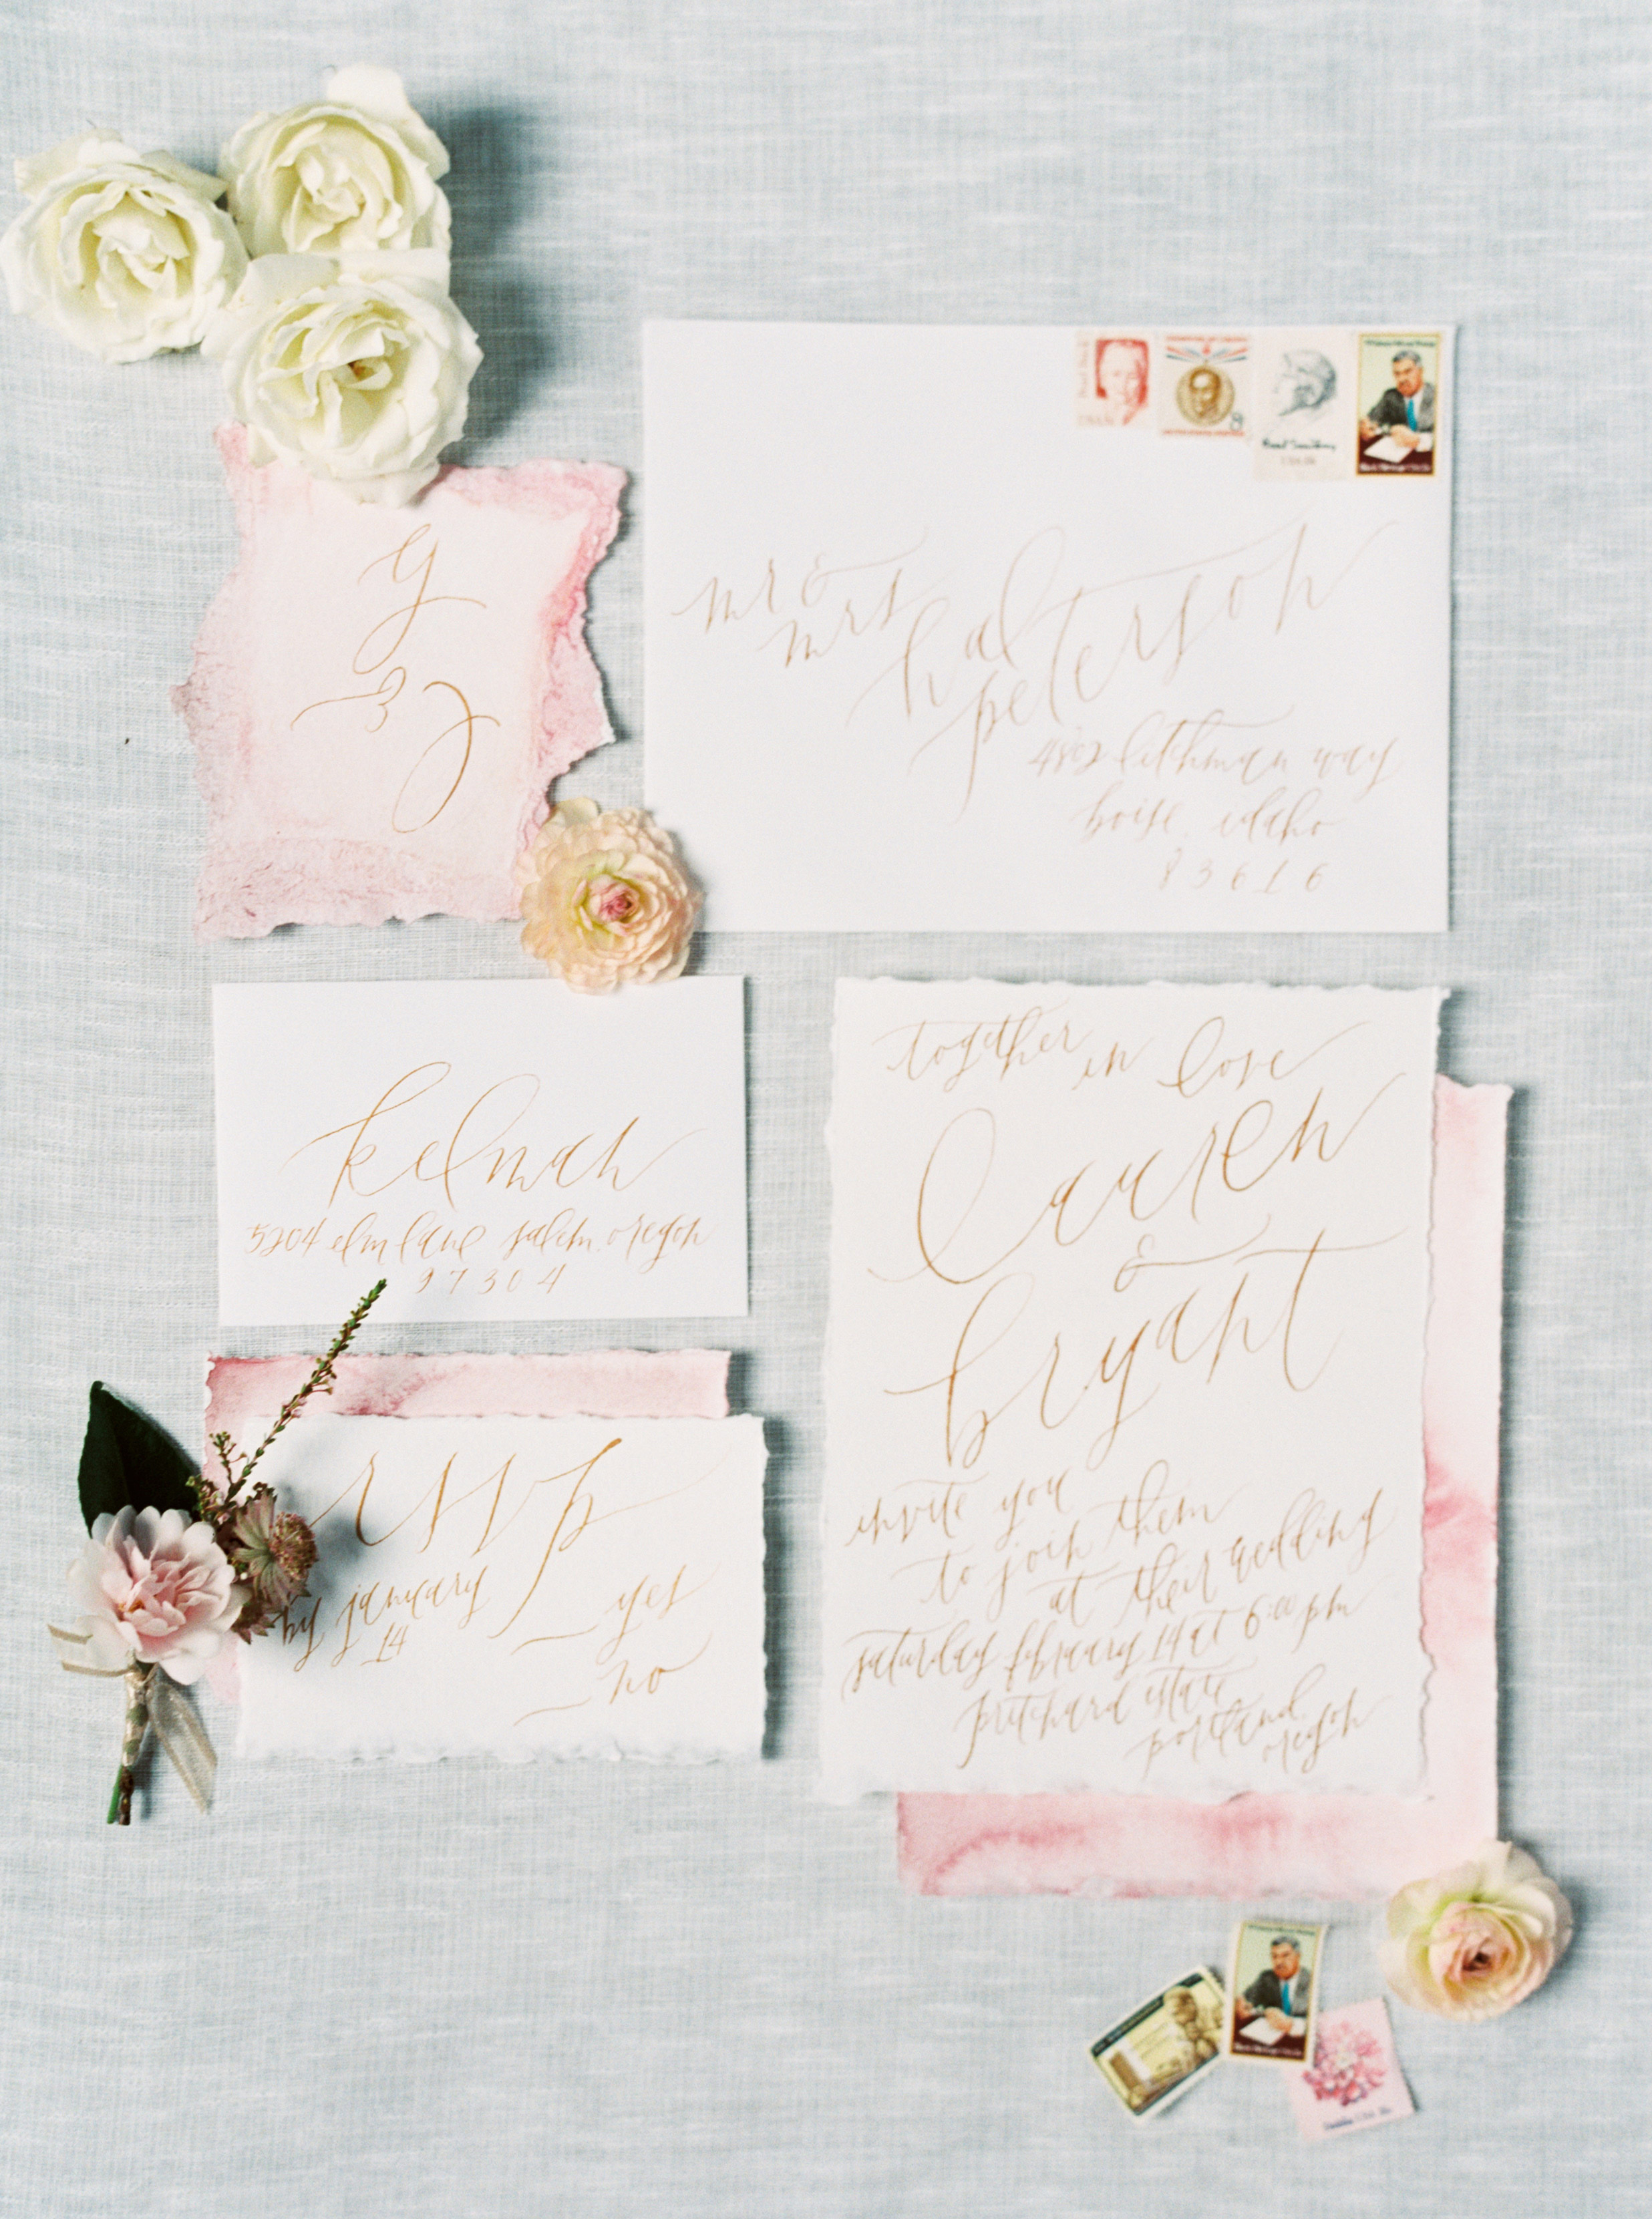 Why Are Wedding Invitations So Expensive?